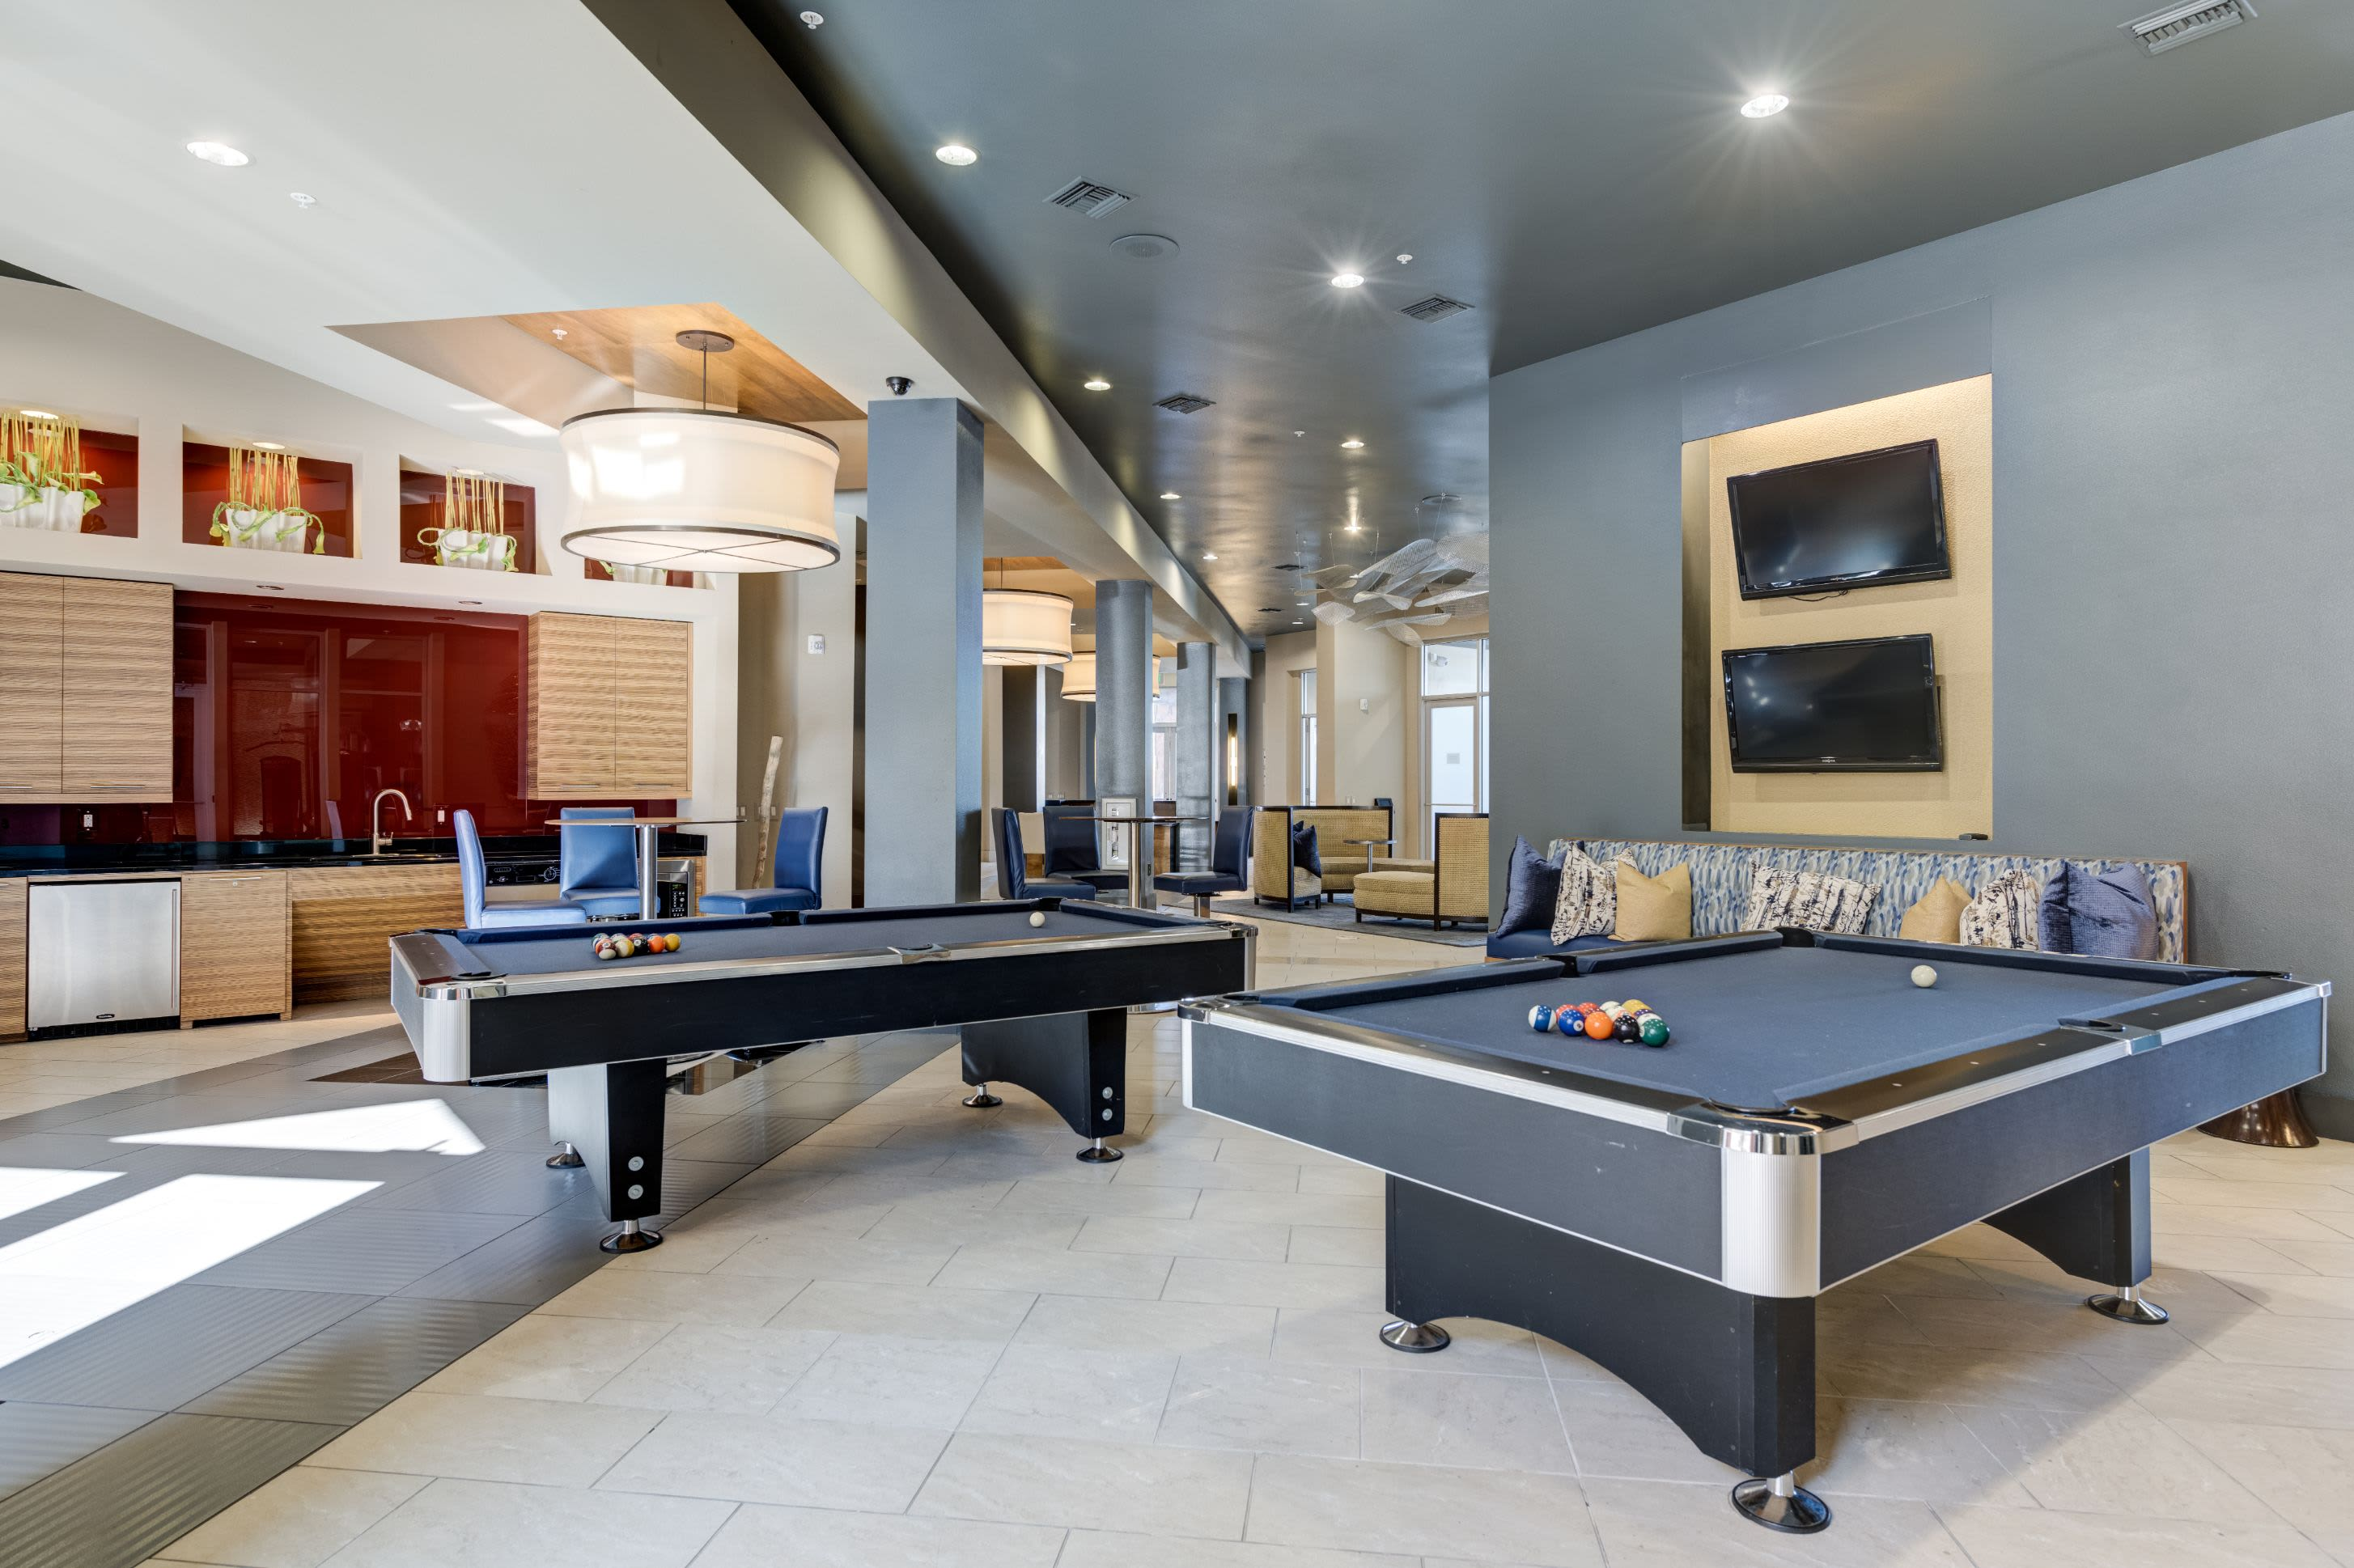 Clubhouse with pool tables and a kitchen at The Marq at Ridgegate in Lone Tree, Colorado